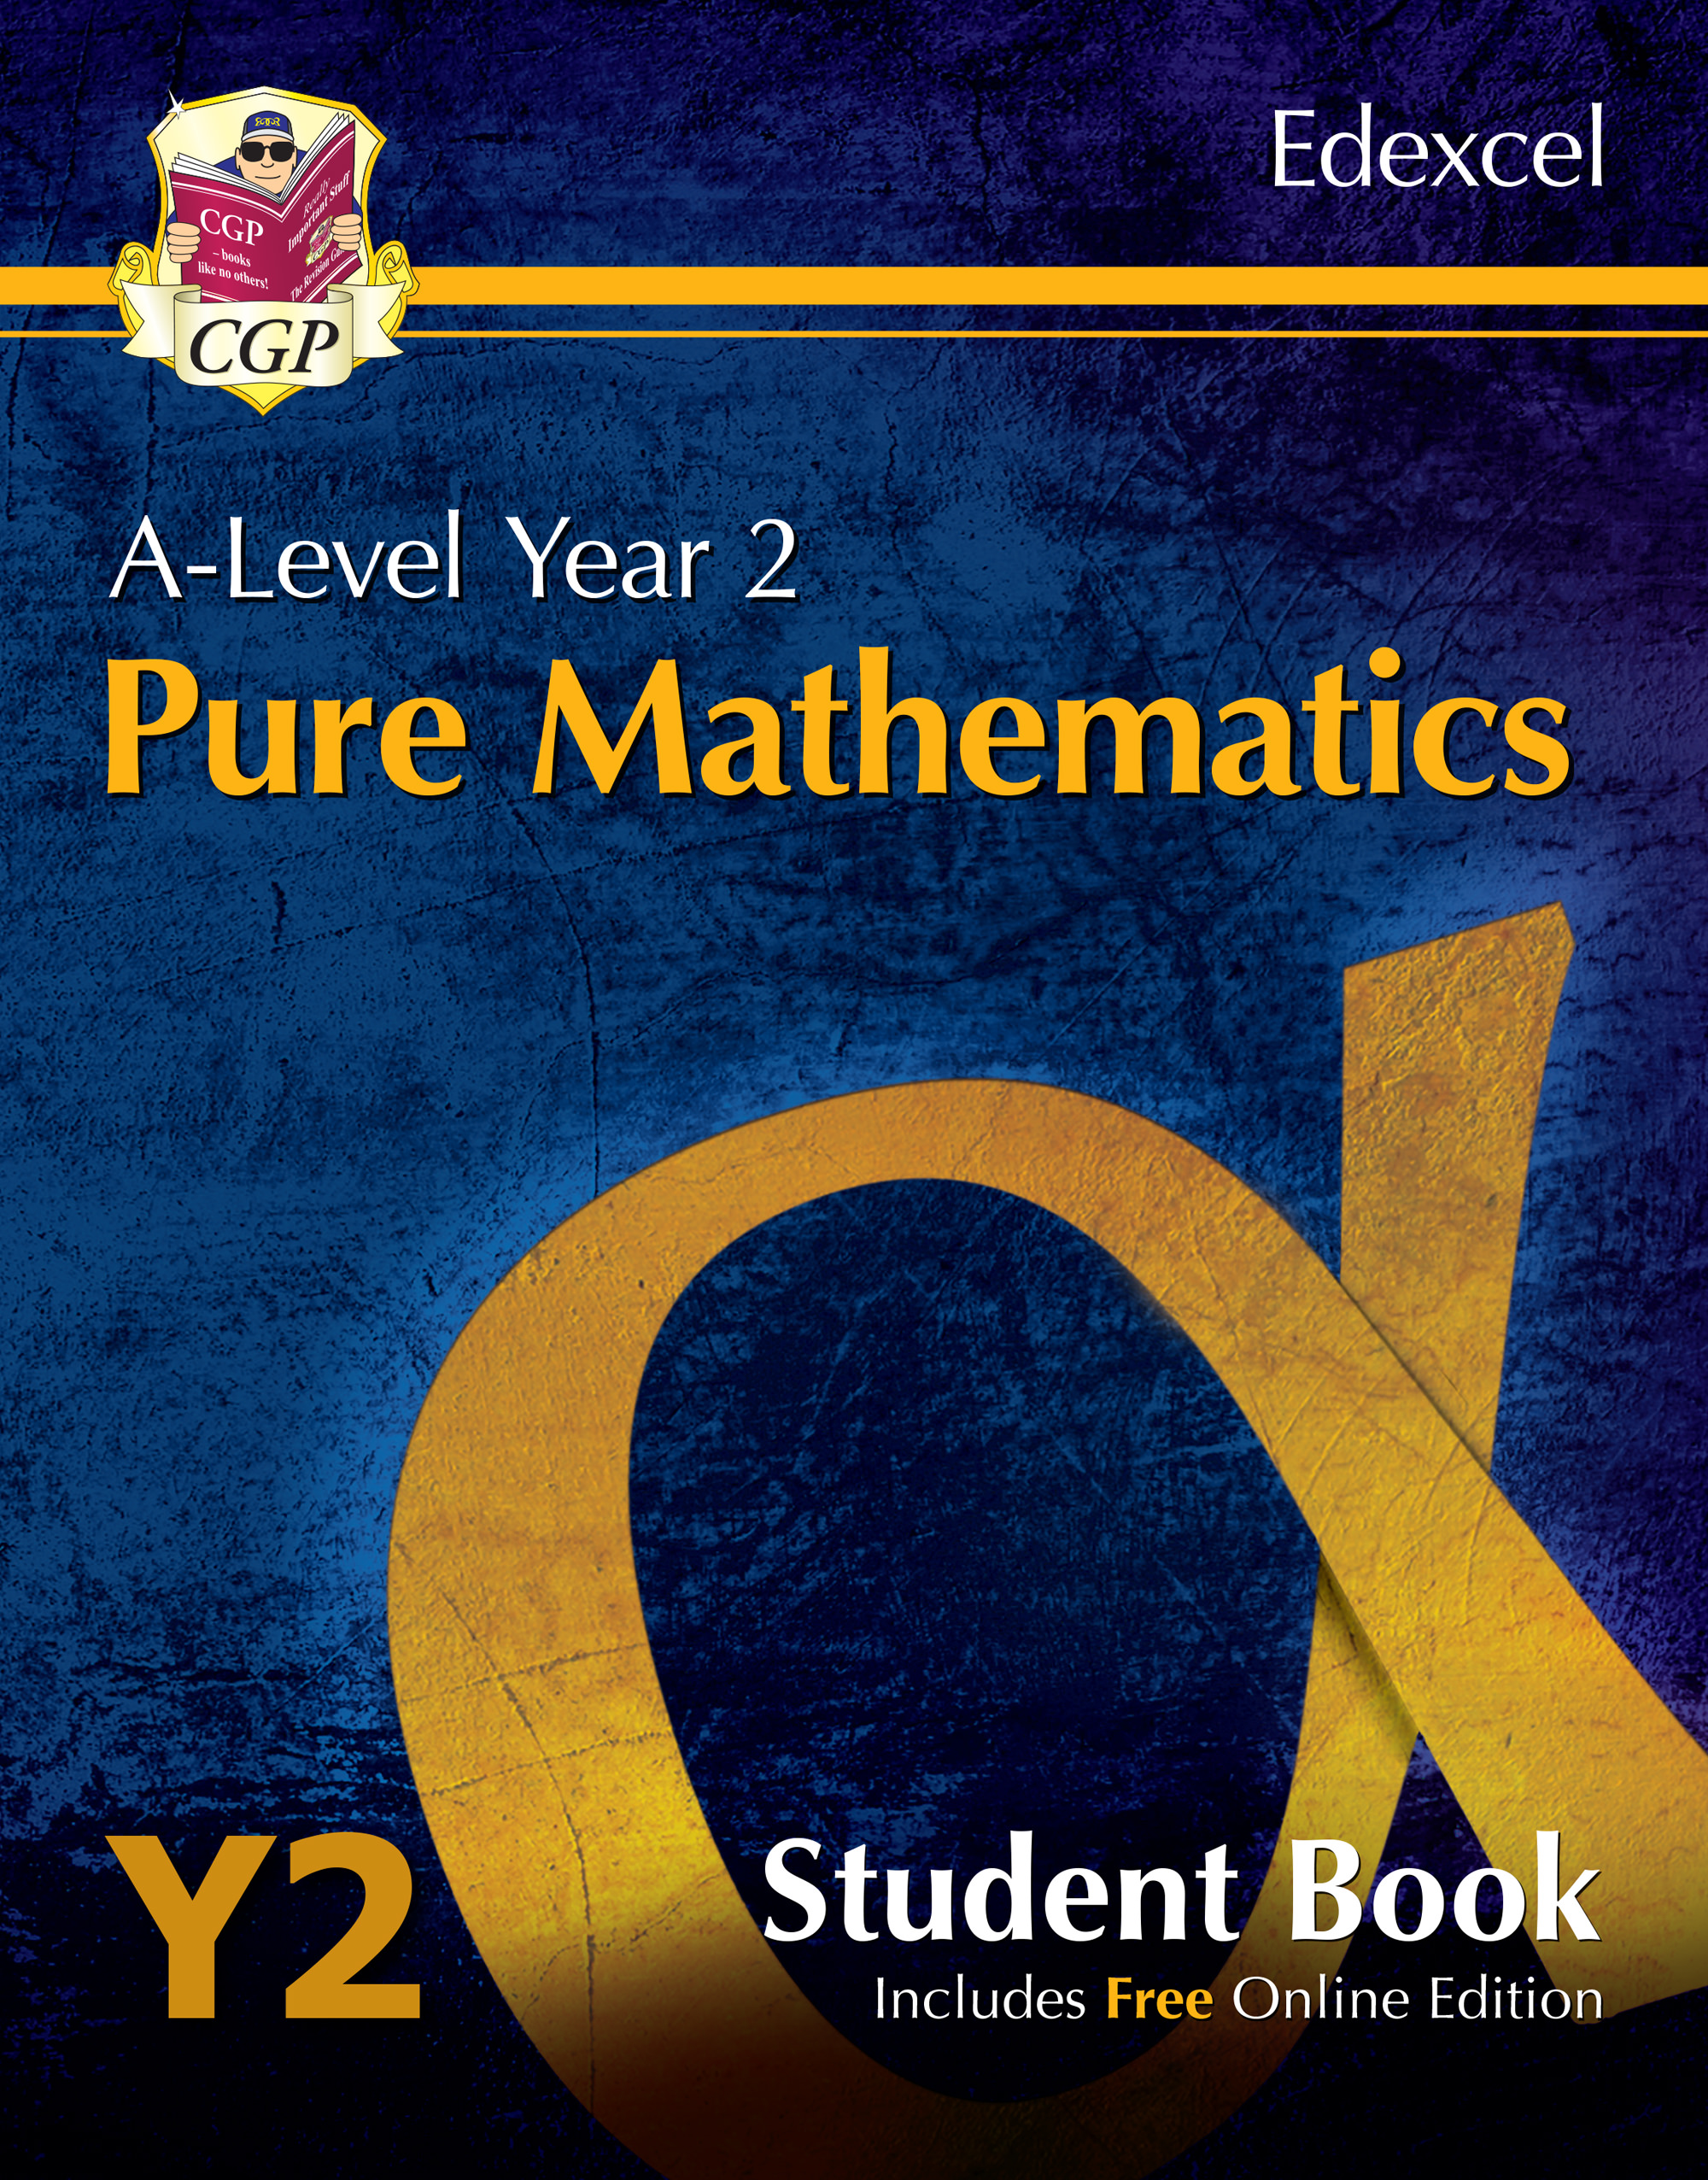 MEPMT61 - New A-Level Maths for Edexcel: Pure Mathematics - Year 2 Student Book (with Online Edition